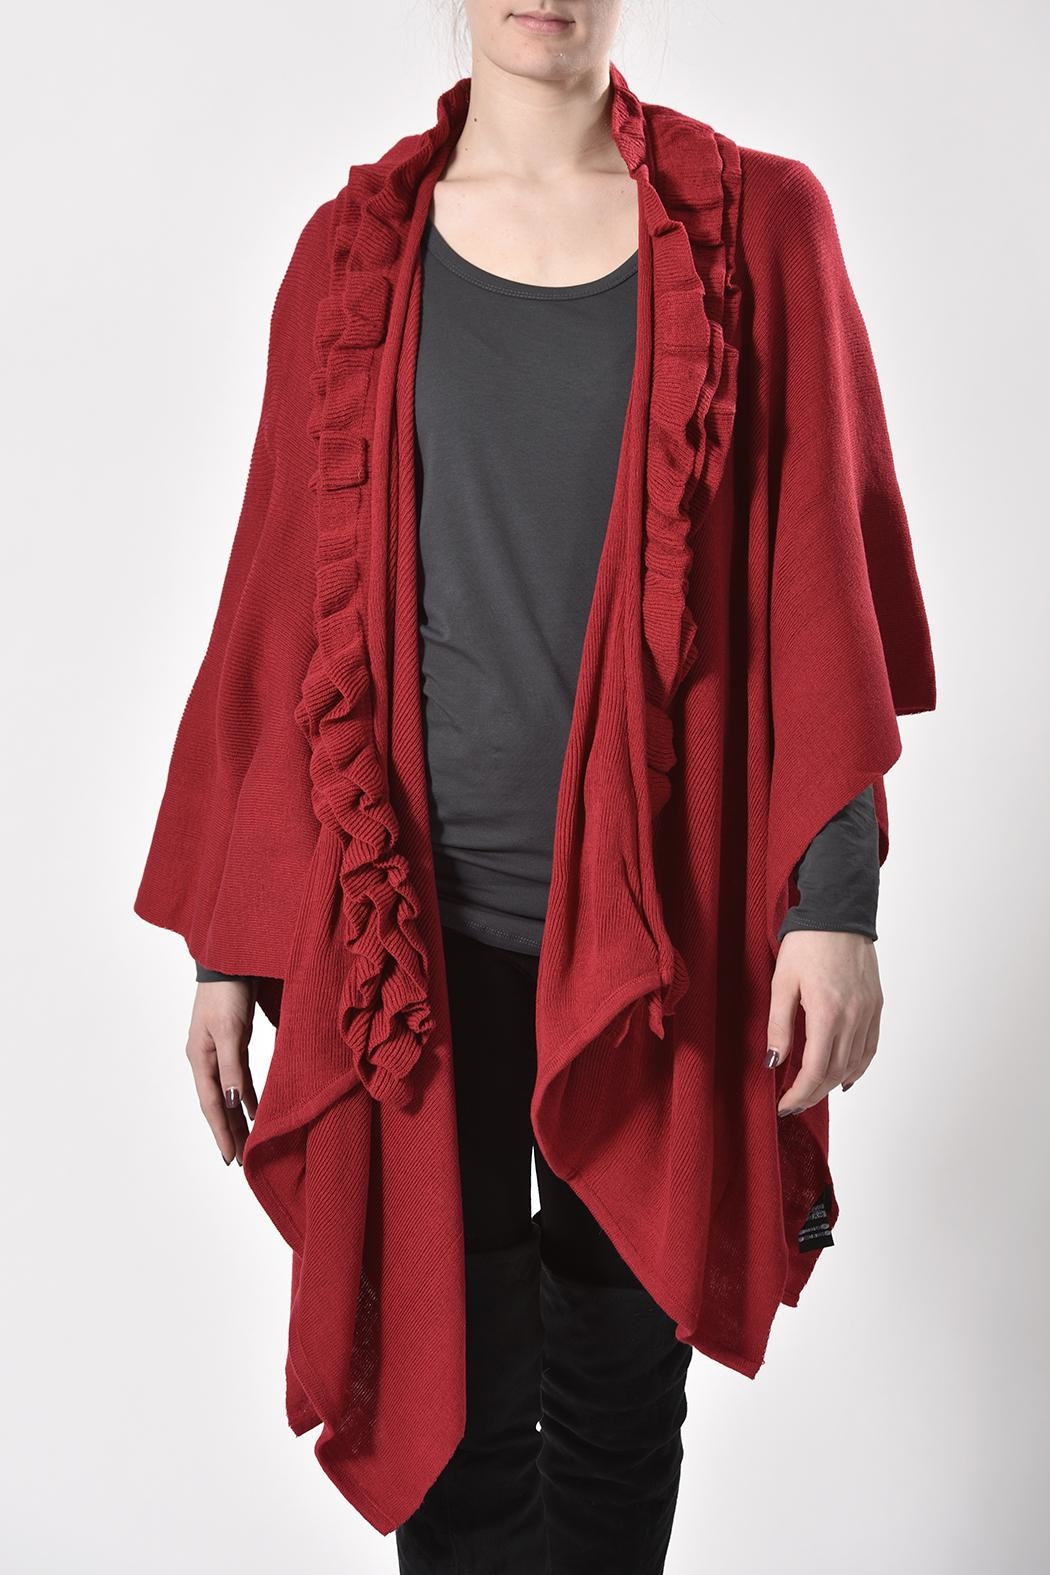 K & K Ruffled Cape - Front Cropped Image